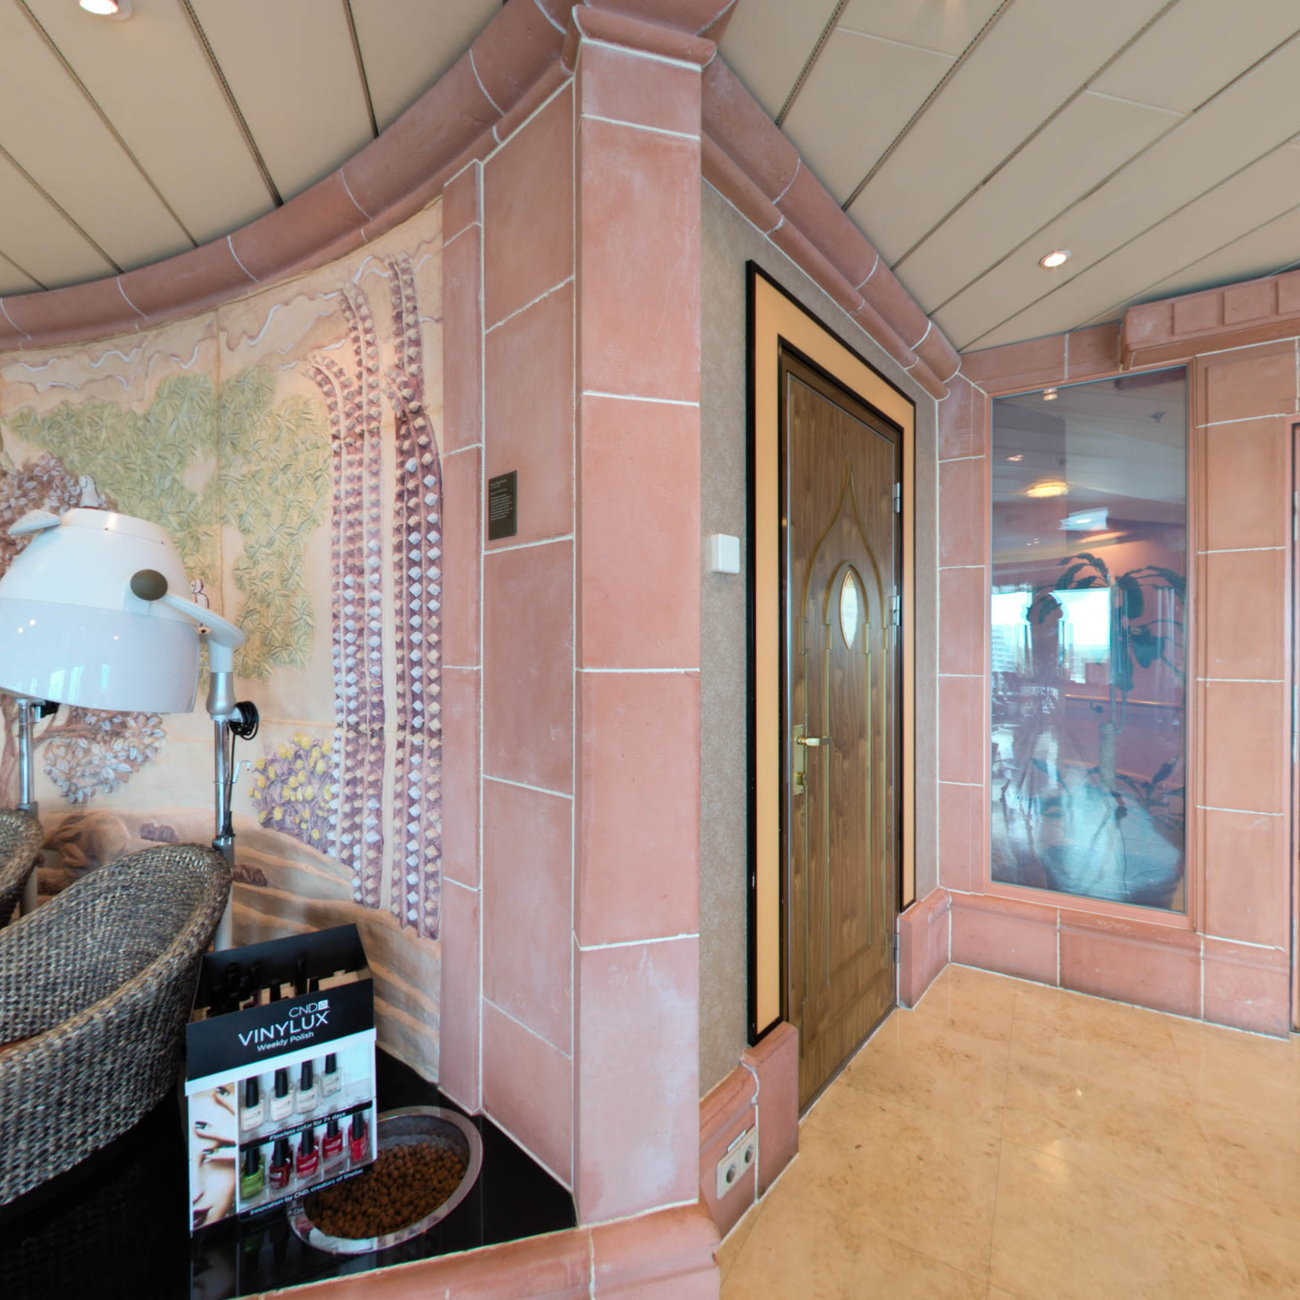 Panorama of Vitality Spa & Salon on Brilliance of the Seas